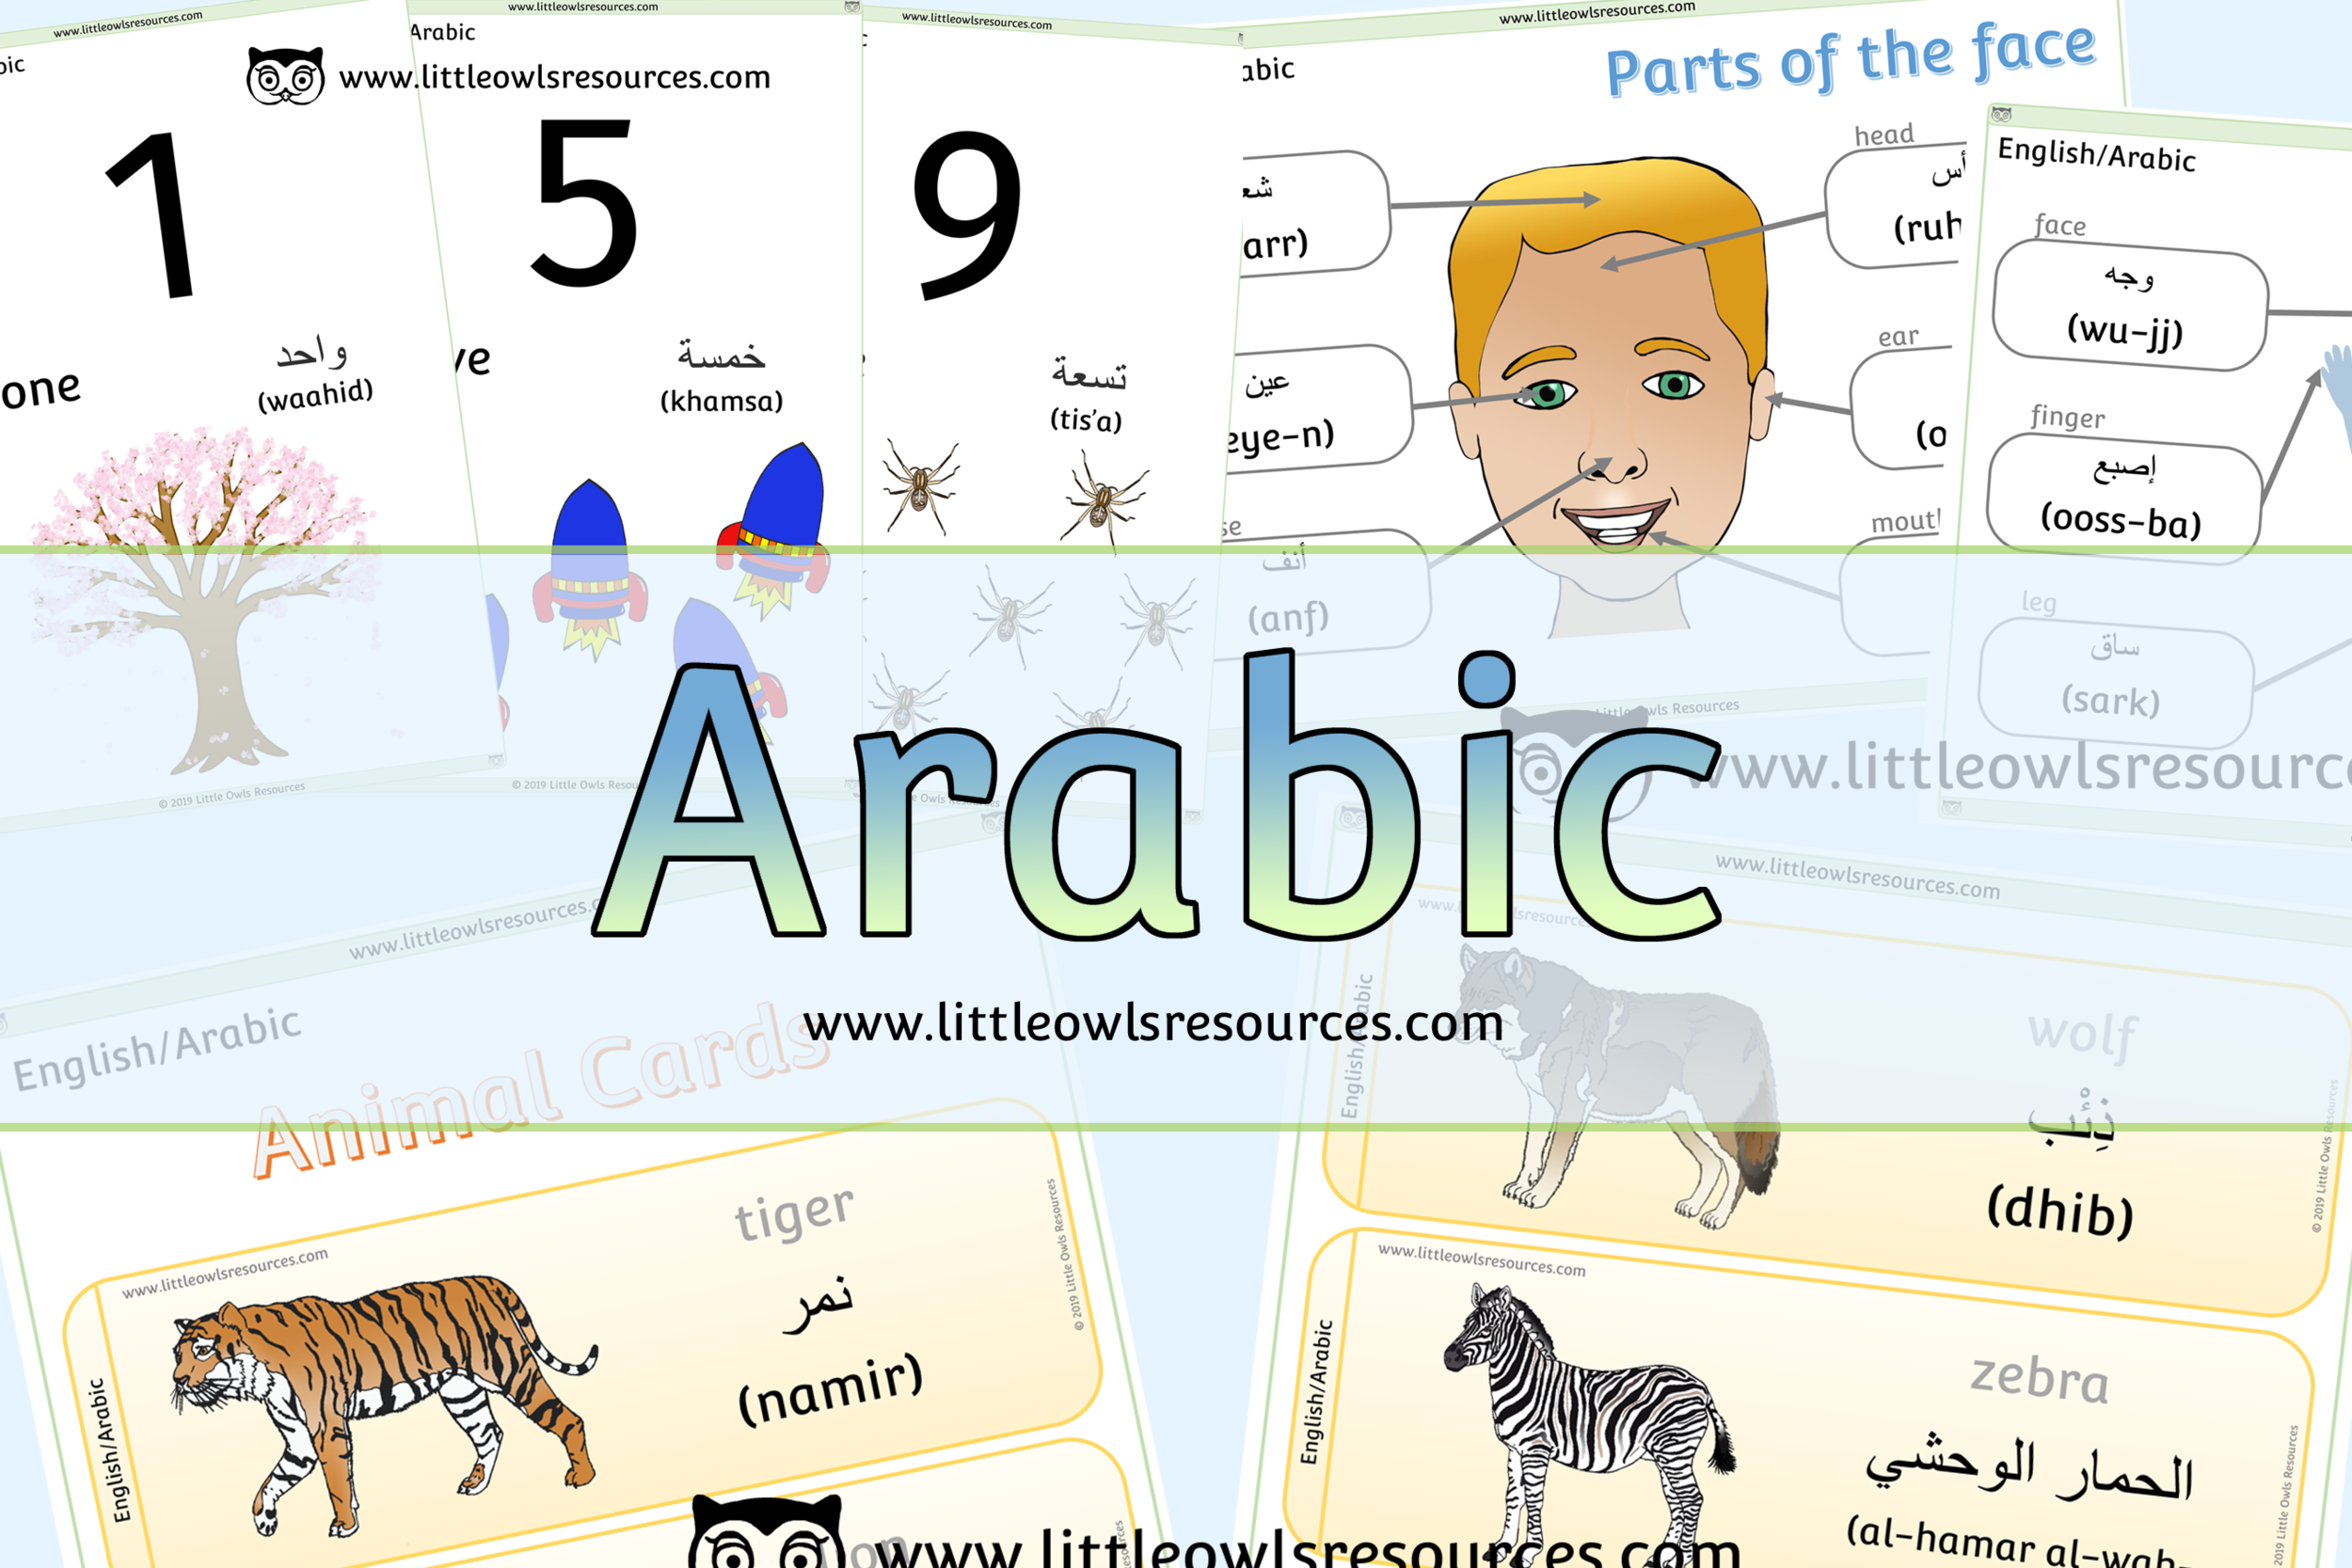 Arabic/English Dual Language Resources